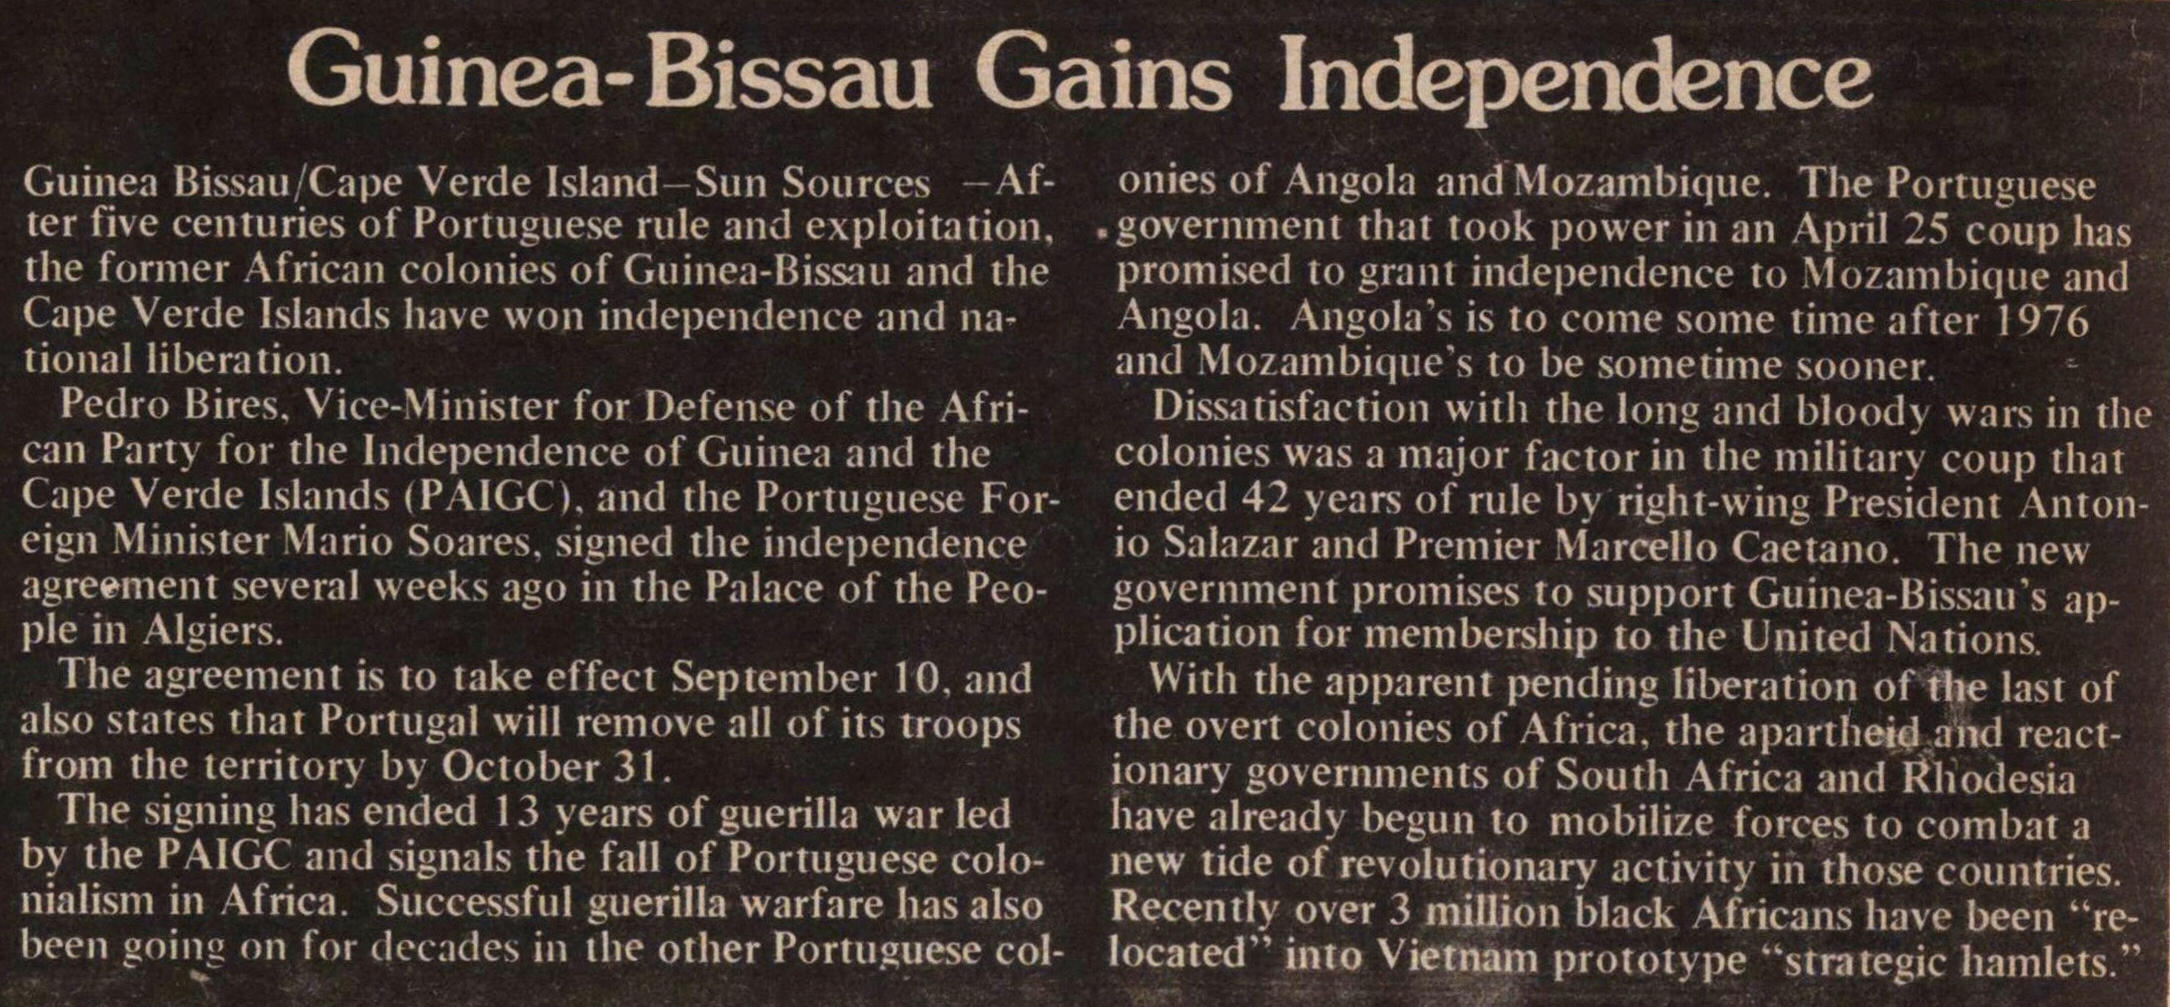 Guinea-bissau Gains Independence image